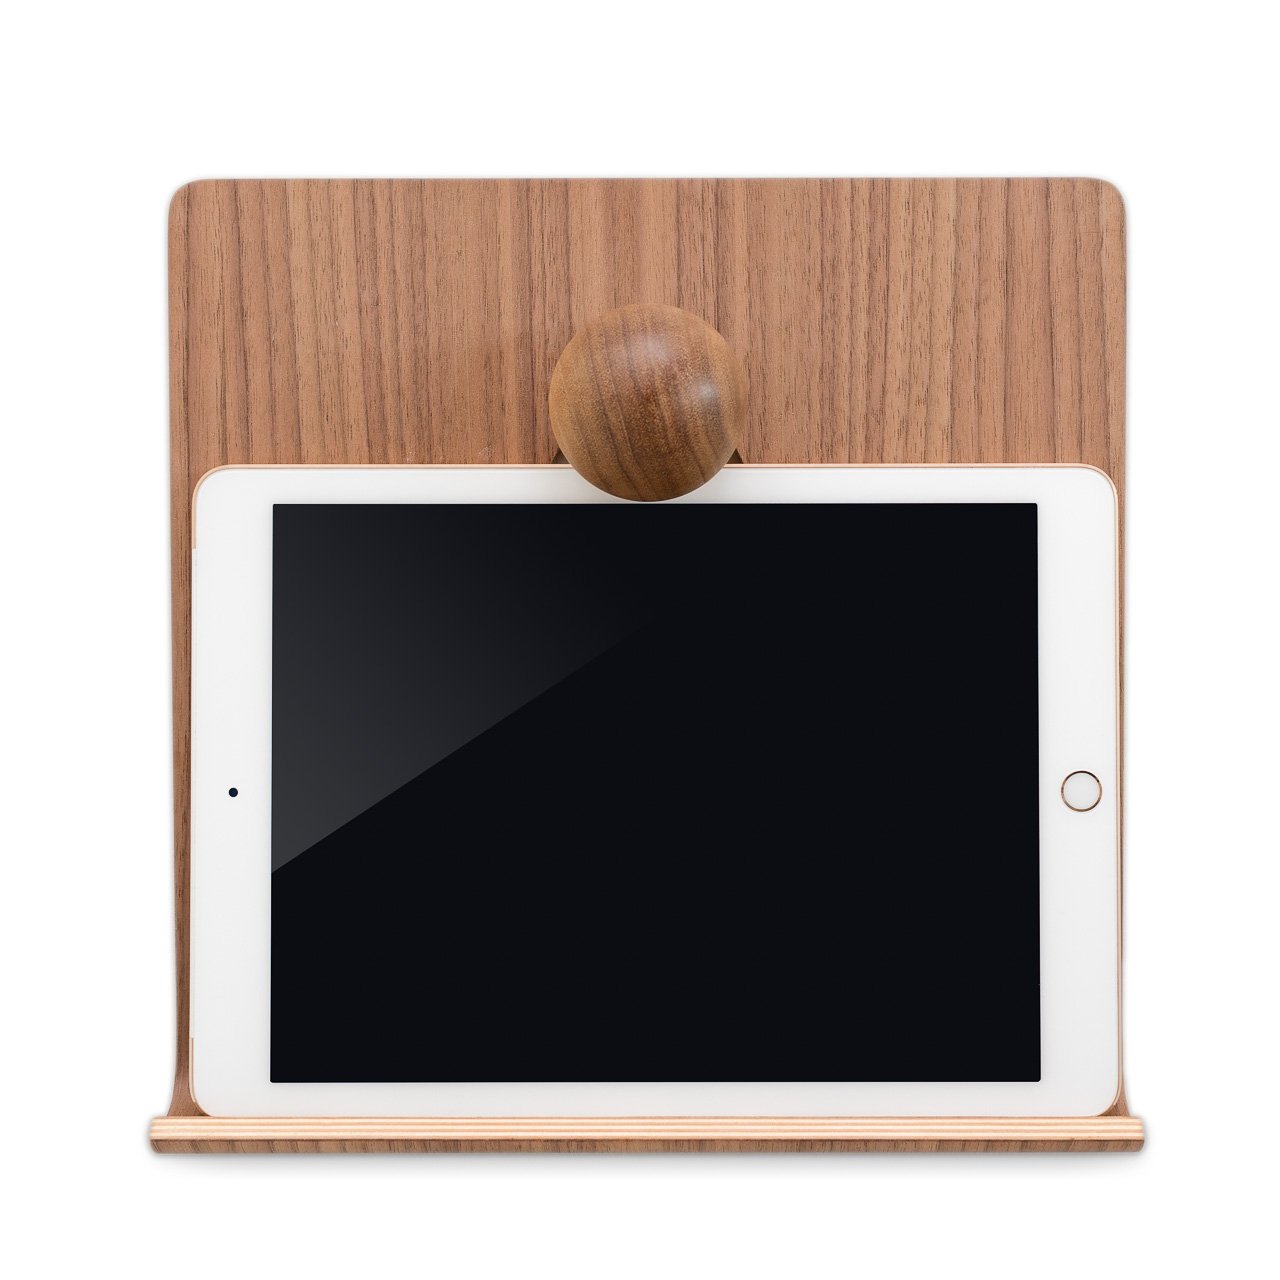 iPad Hanger in Walnut